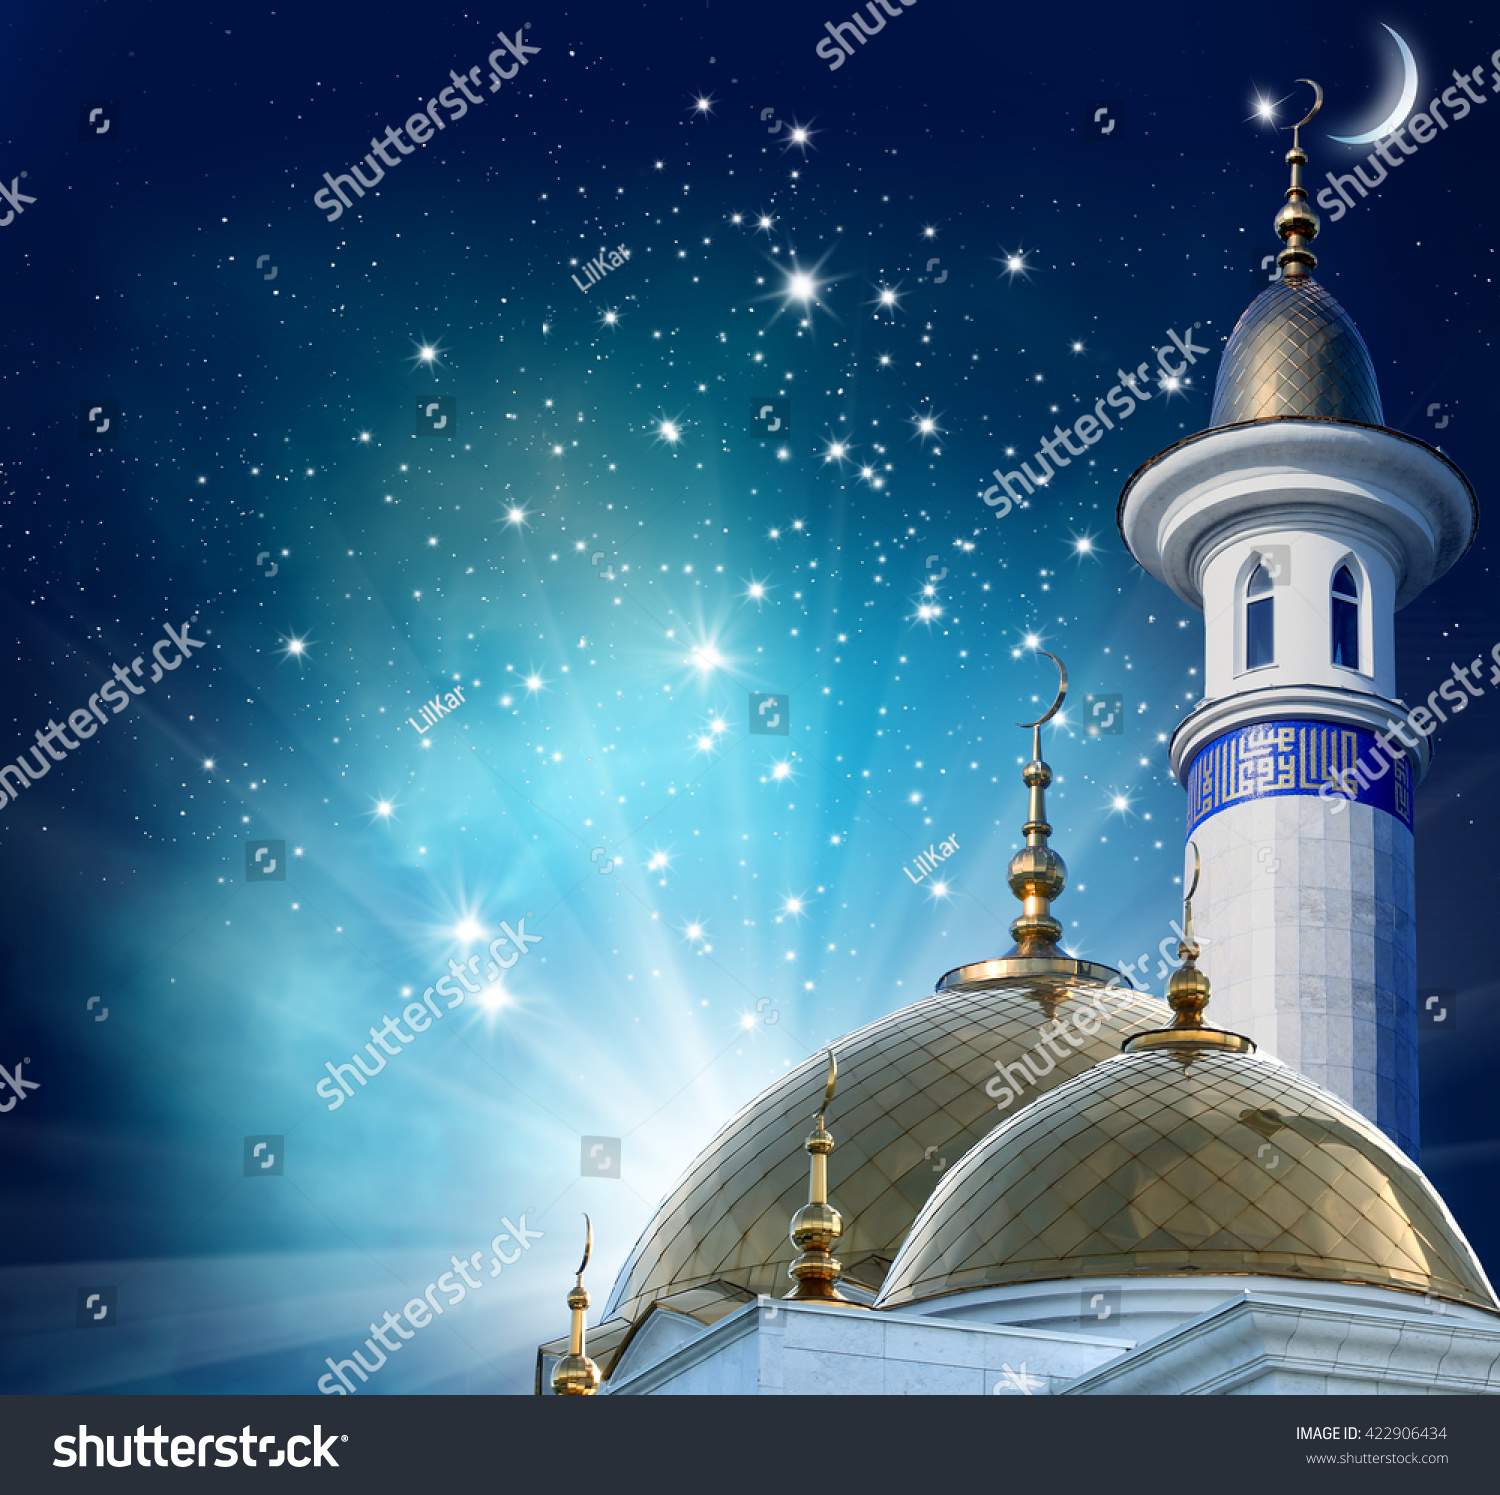 Mosque background for ramadan kareem stock photography image - Ramadan Kareem Background Crescent Moon At A Top Of A Mosque